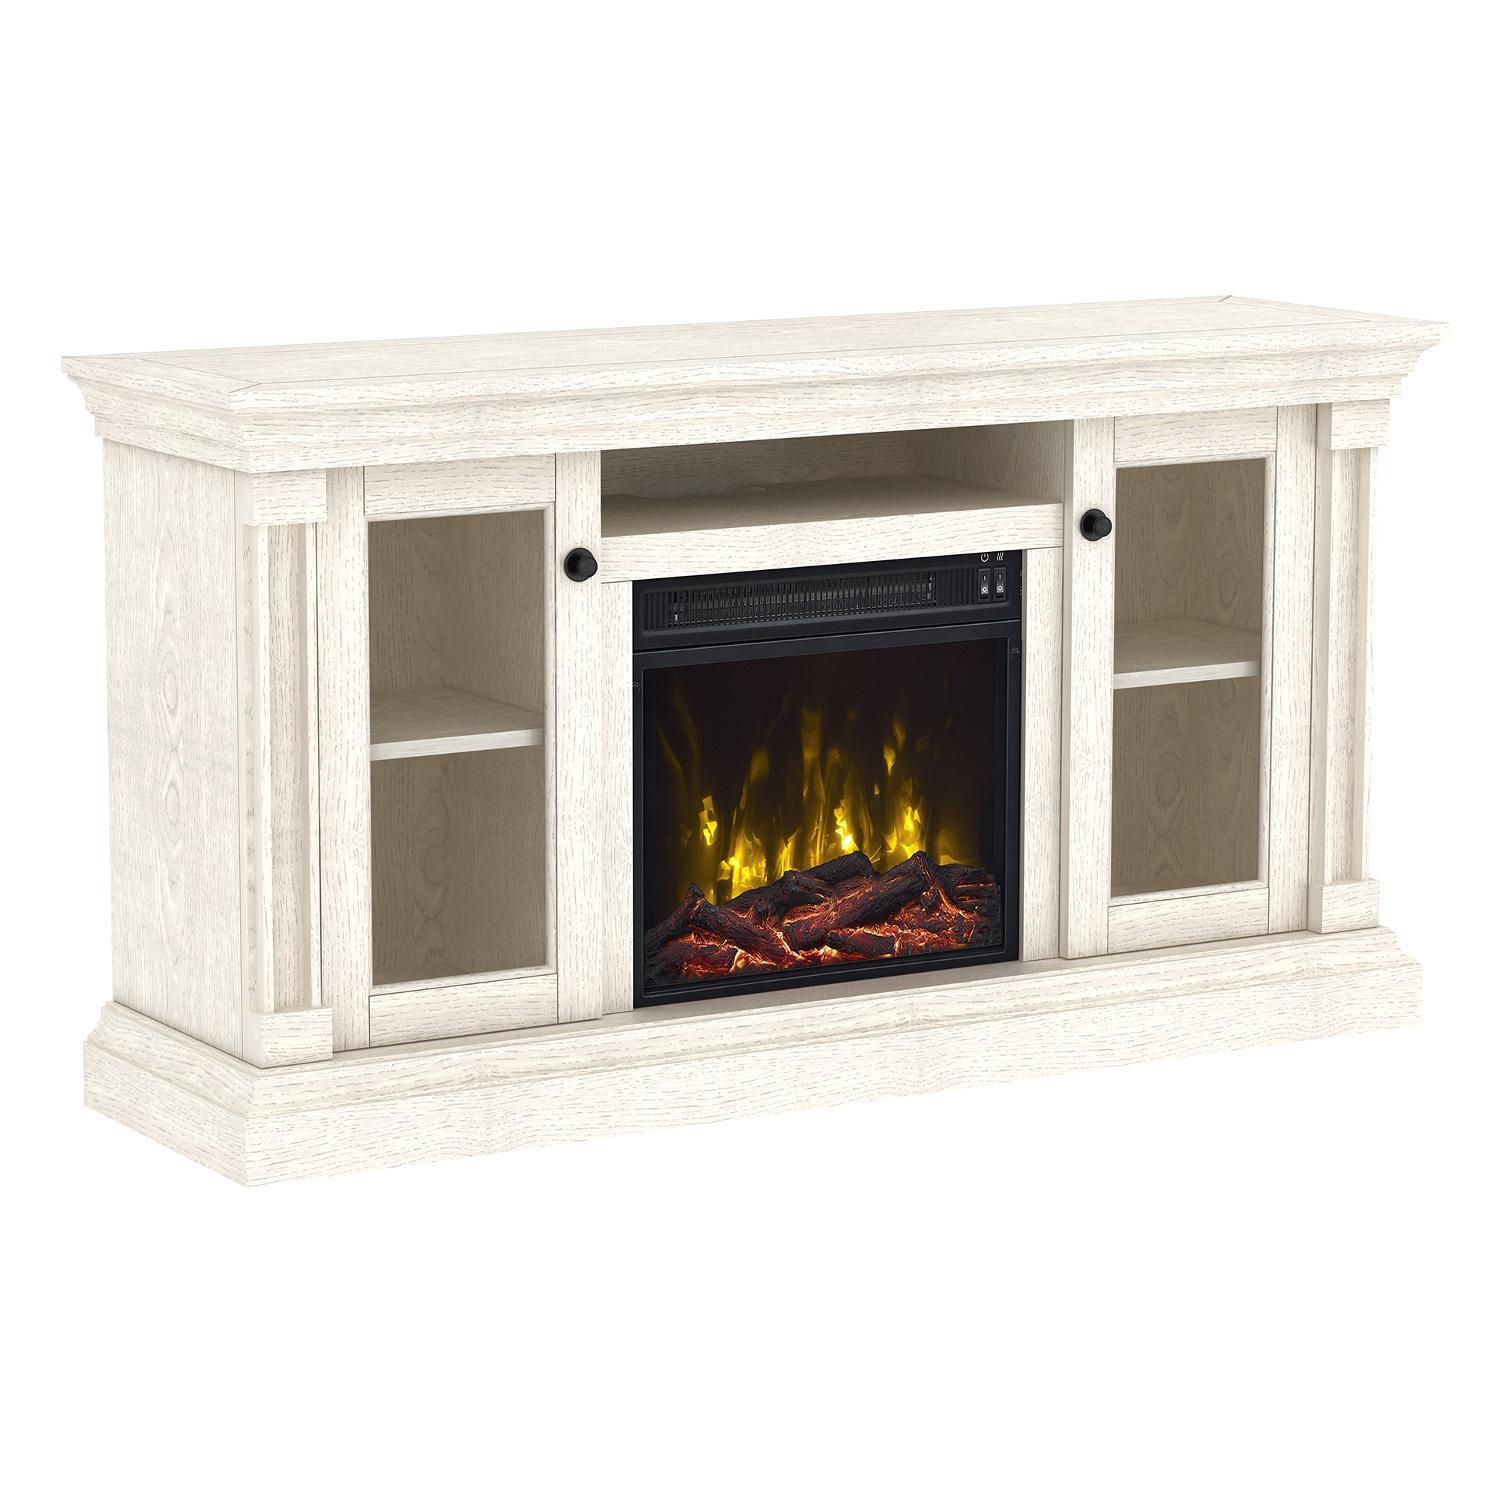 "Classicflame Foxmoor 55"" Tv Stand With Electric Fireplace - White Oak - 18mm7325-po34s"